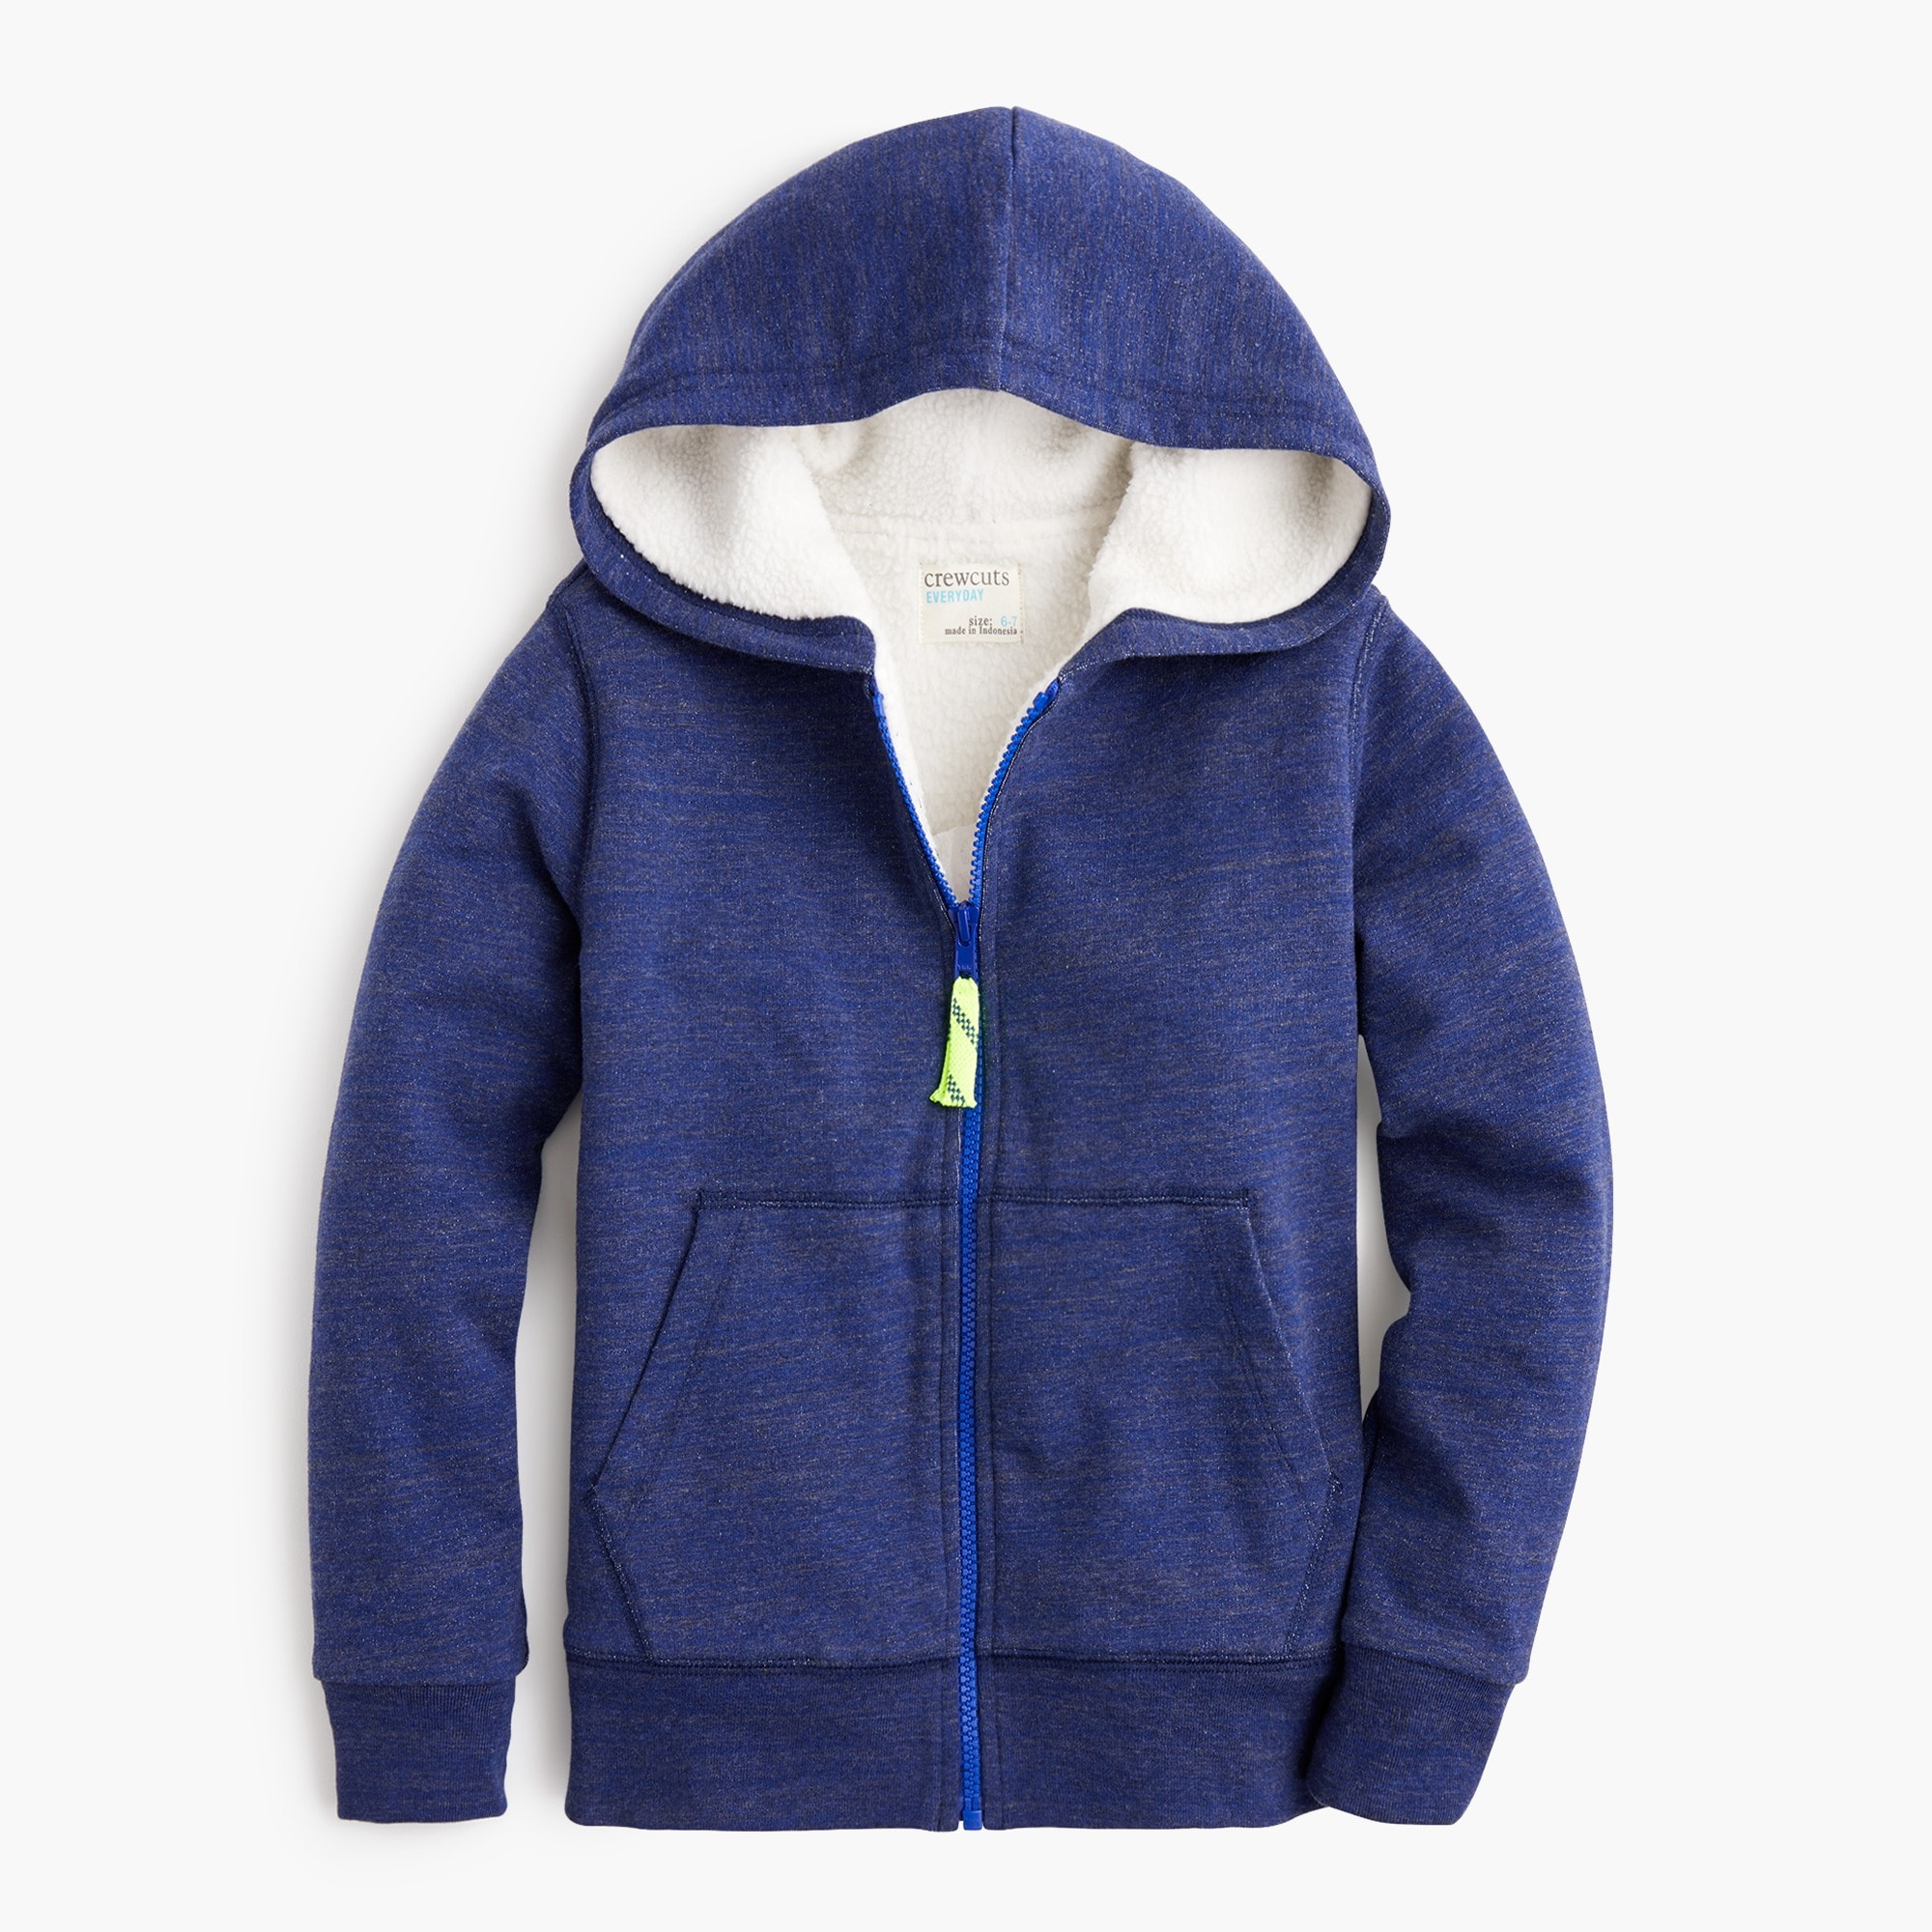 boys Boys' sherpa-lined full-zip hoodie sweatshirt